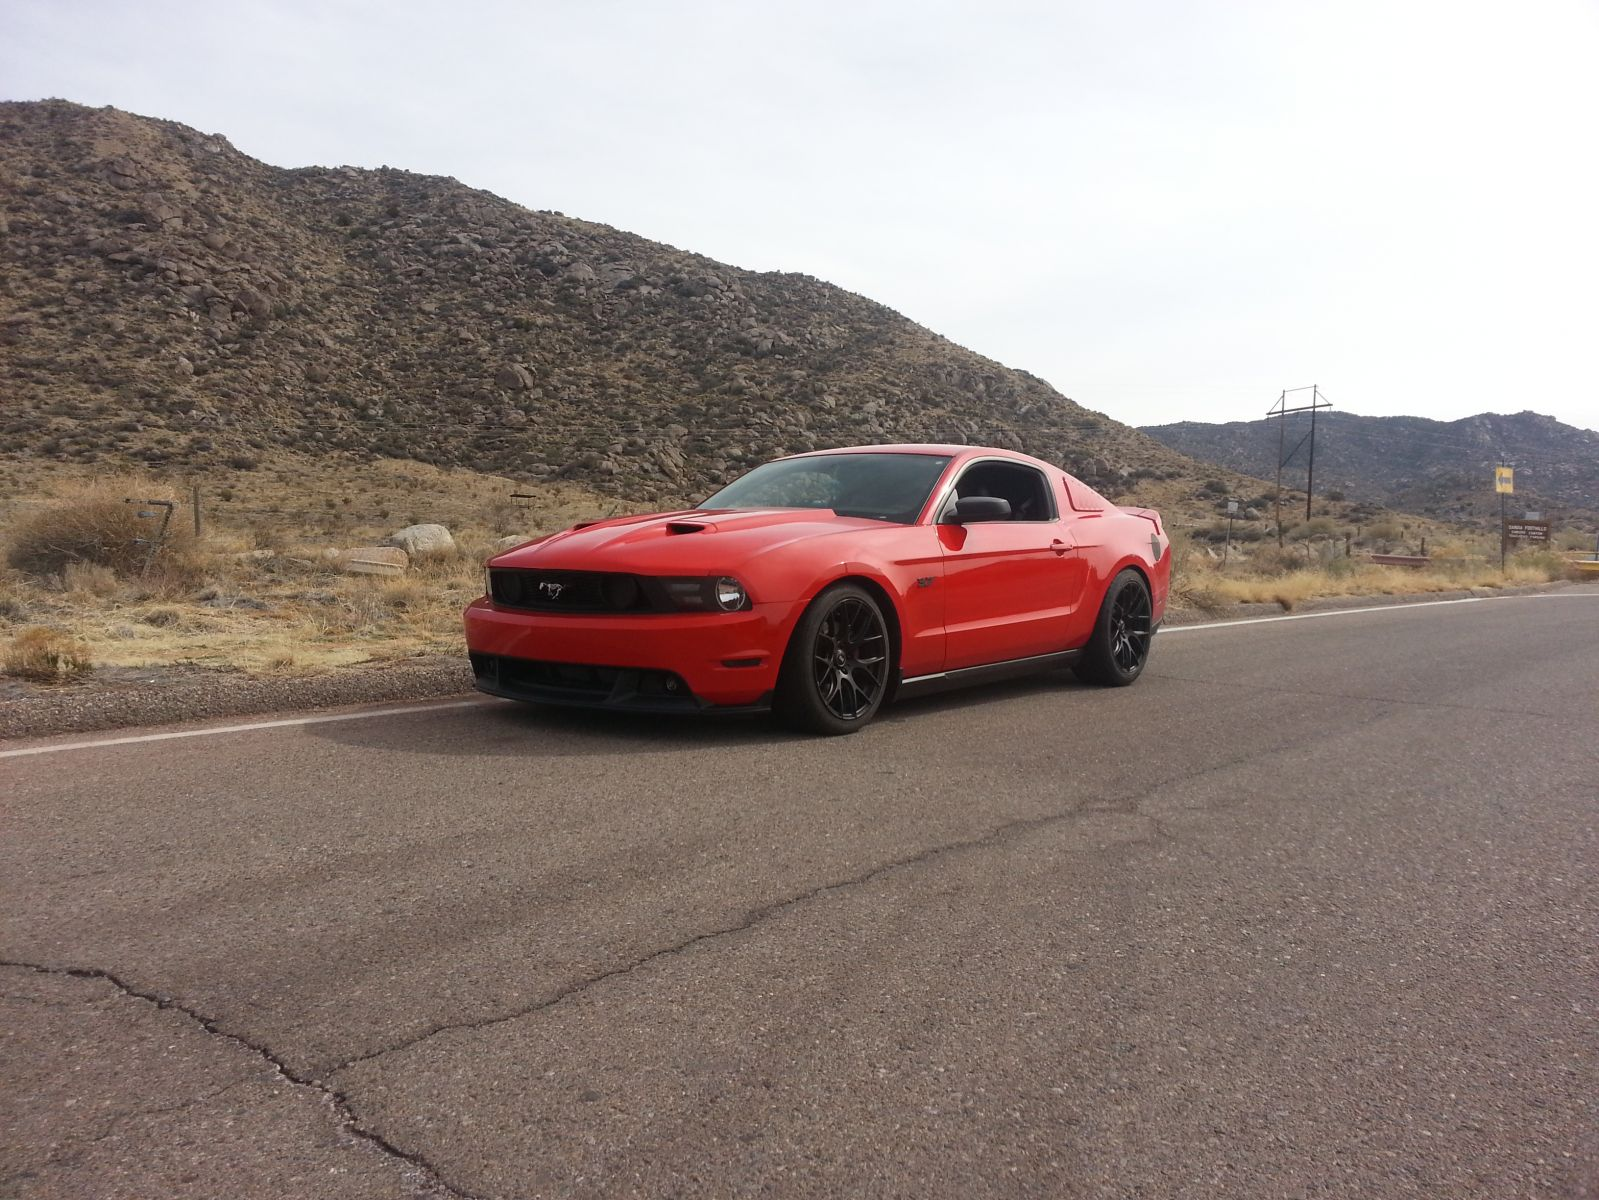 Click image for larger version  Name:2011 fastfords new pics.jpg Views:743 Size:324.1 KB ID:153657